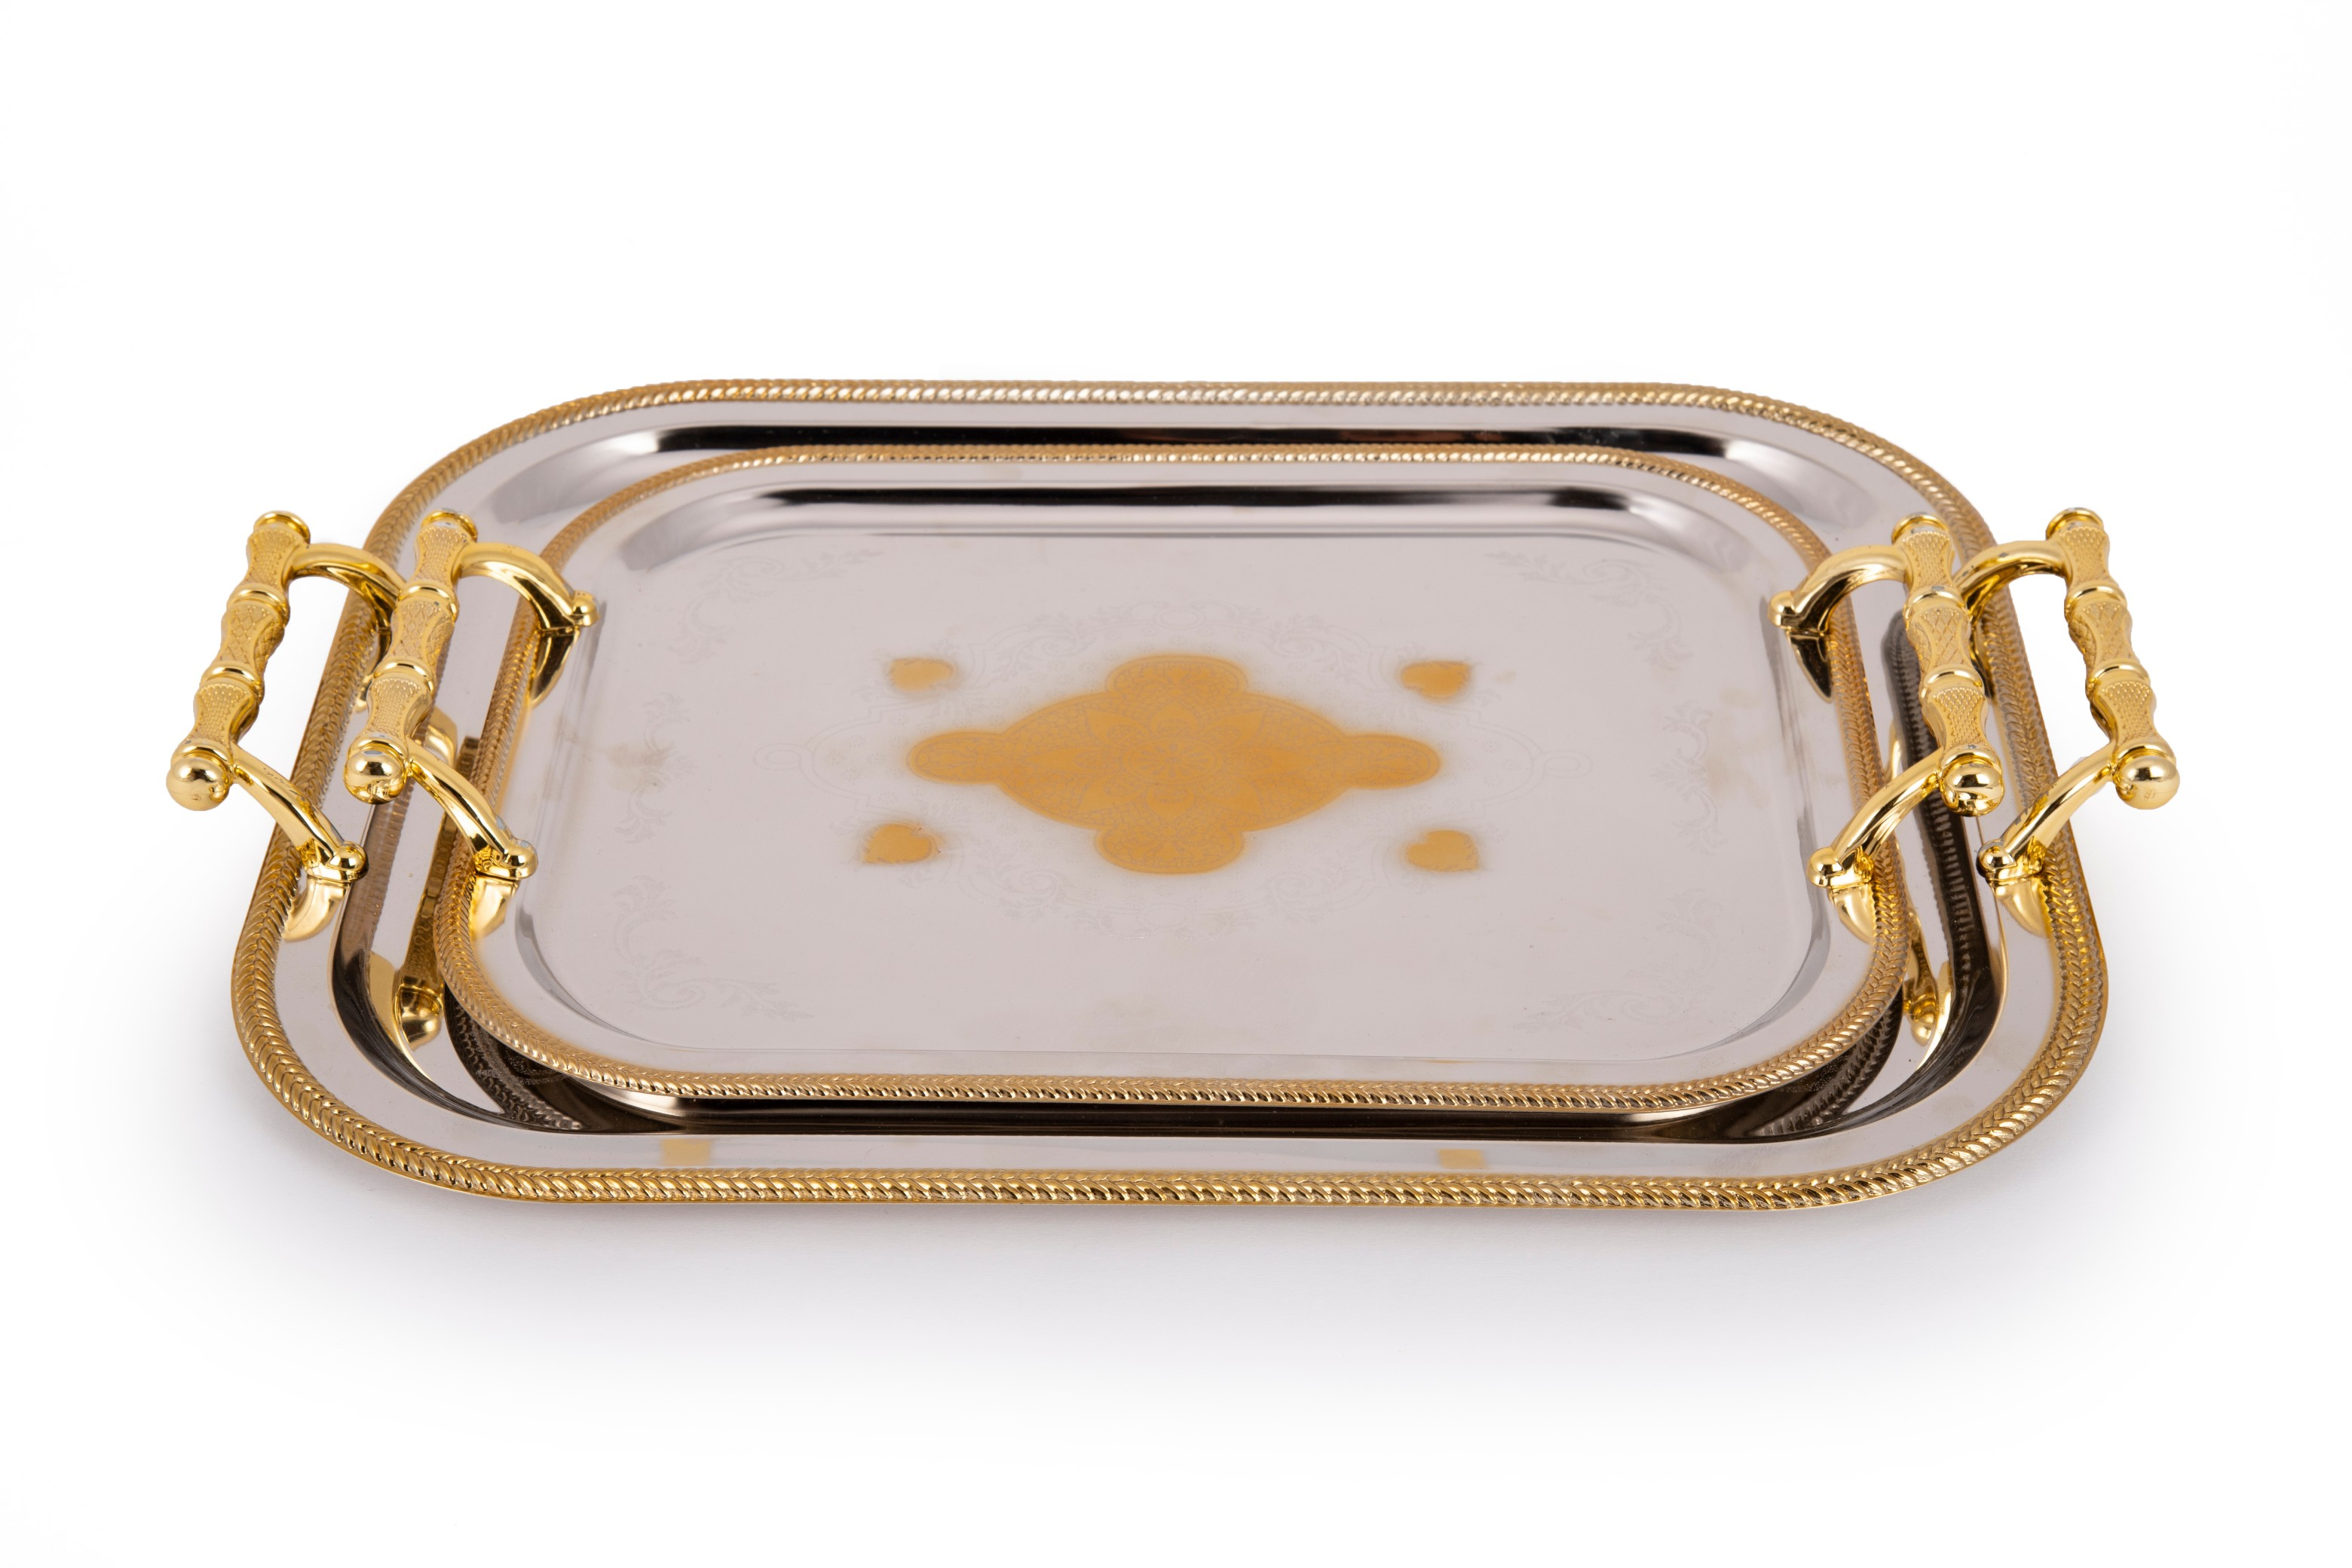 Savannah Set of 2 Stainless steel Trays in Silver & Gold Colour by Living Essence